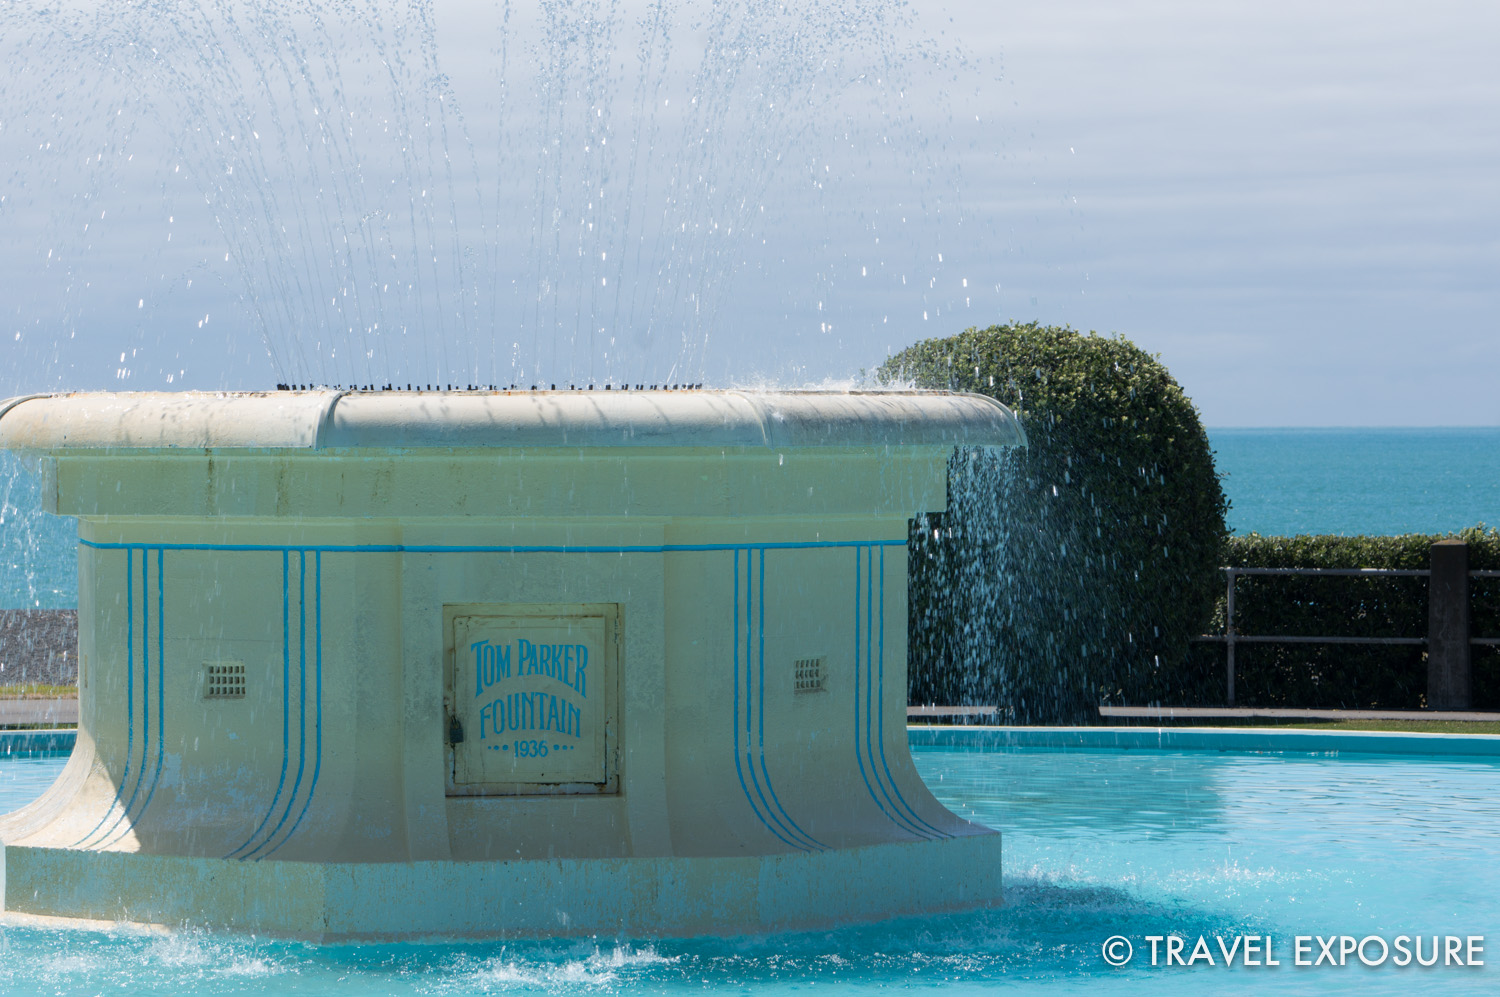 Fountain at Napier, the world's most consistently art deco city